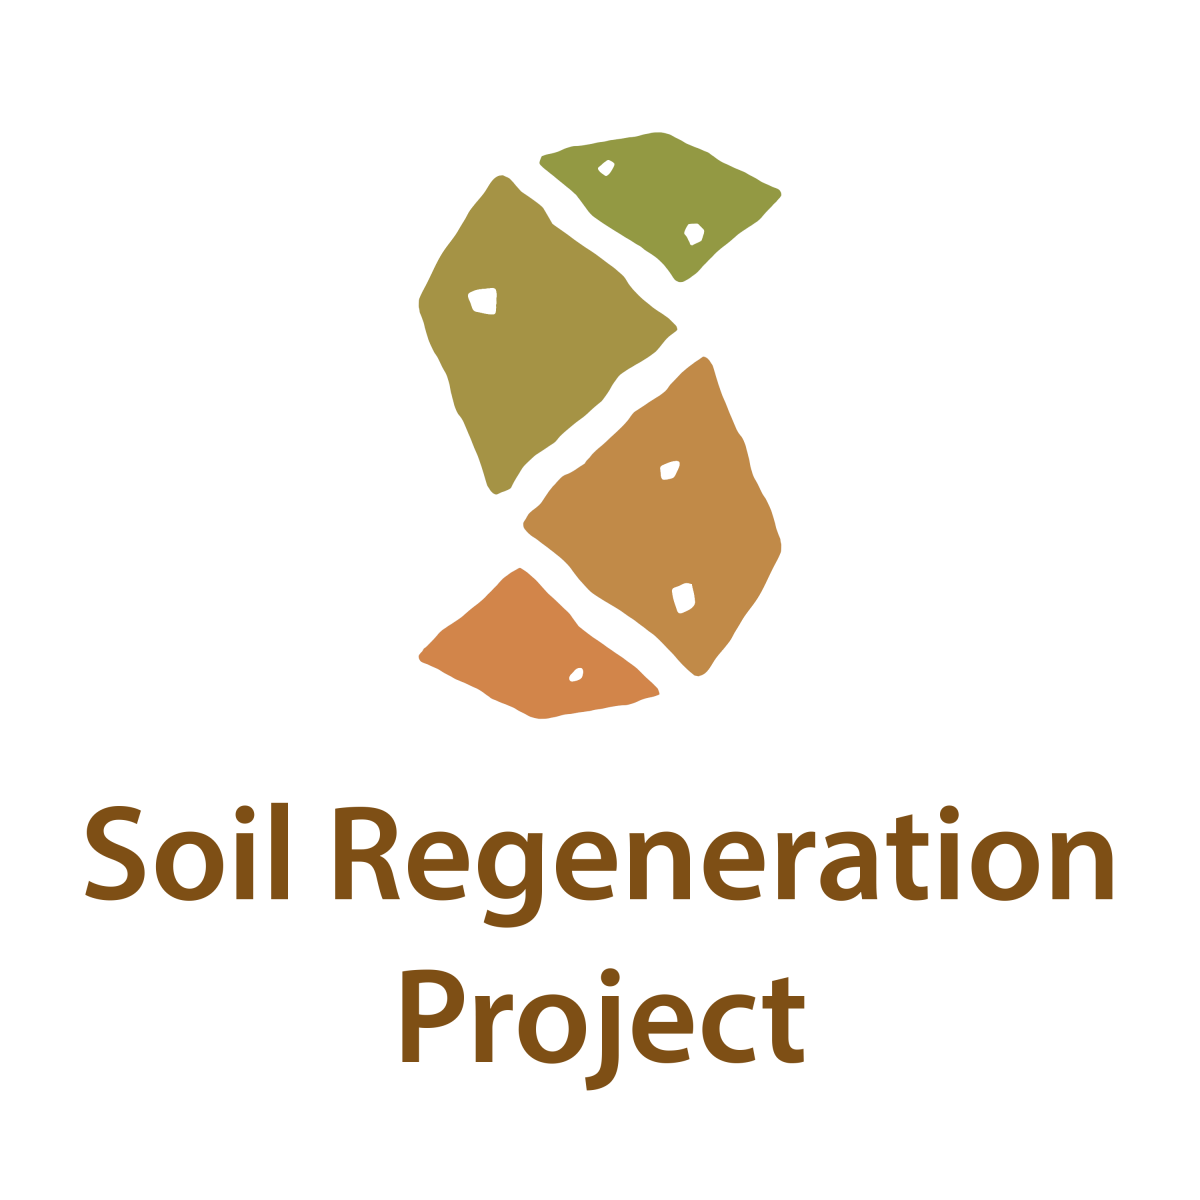 The Soil Regeneration Project